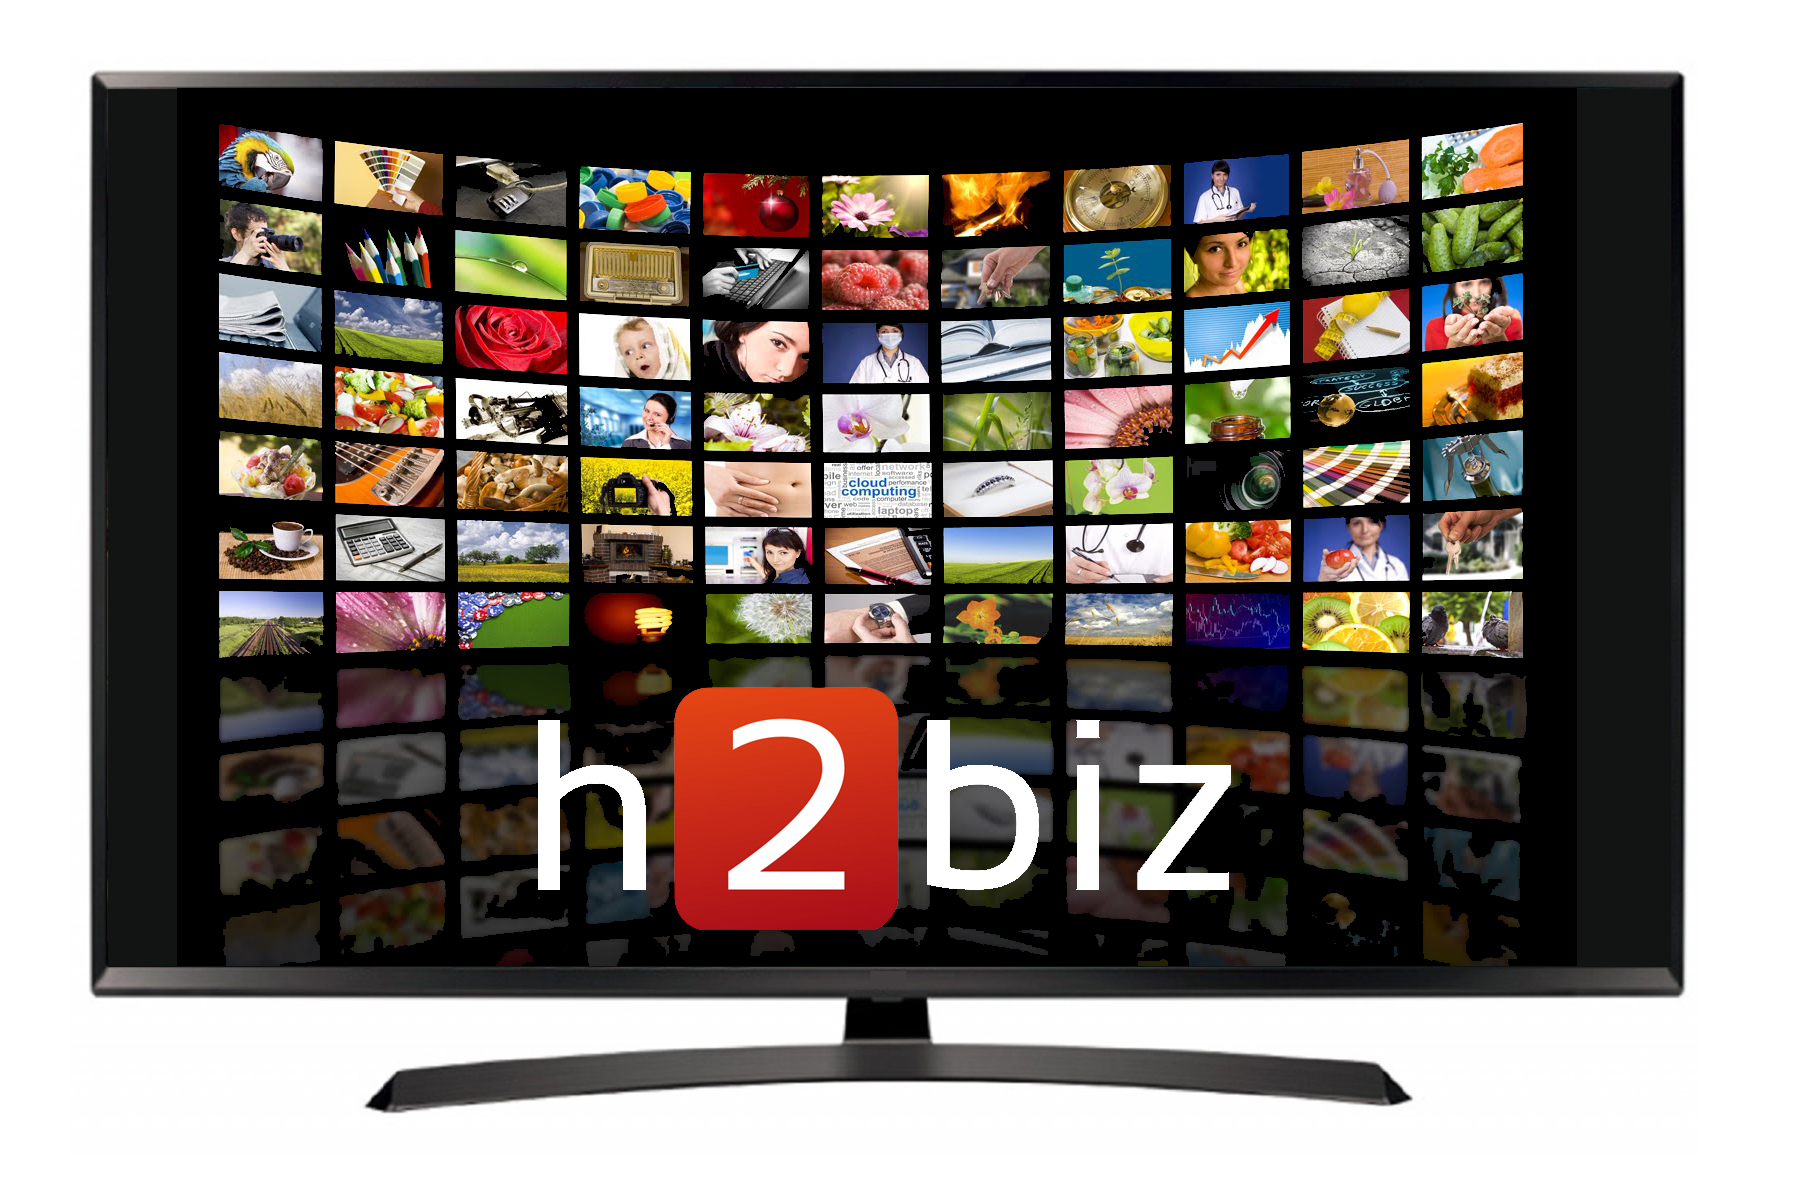 La Streaming TV di H2biz acquista film e serie tv sul mercato